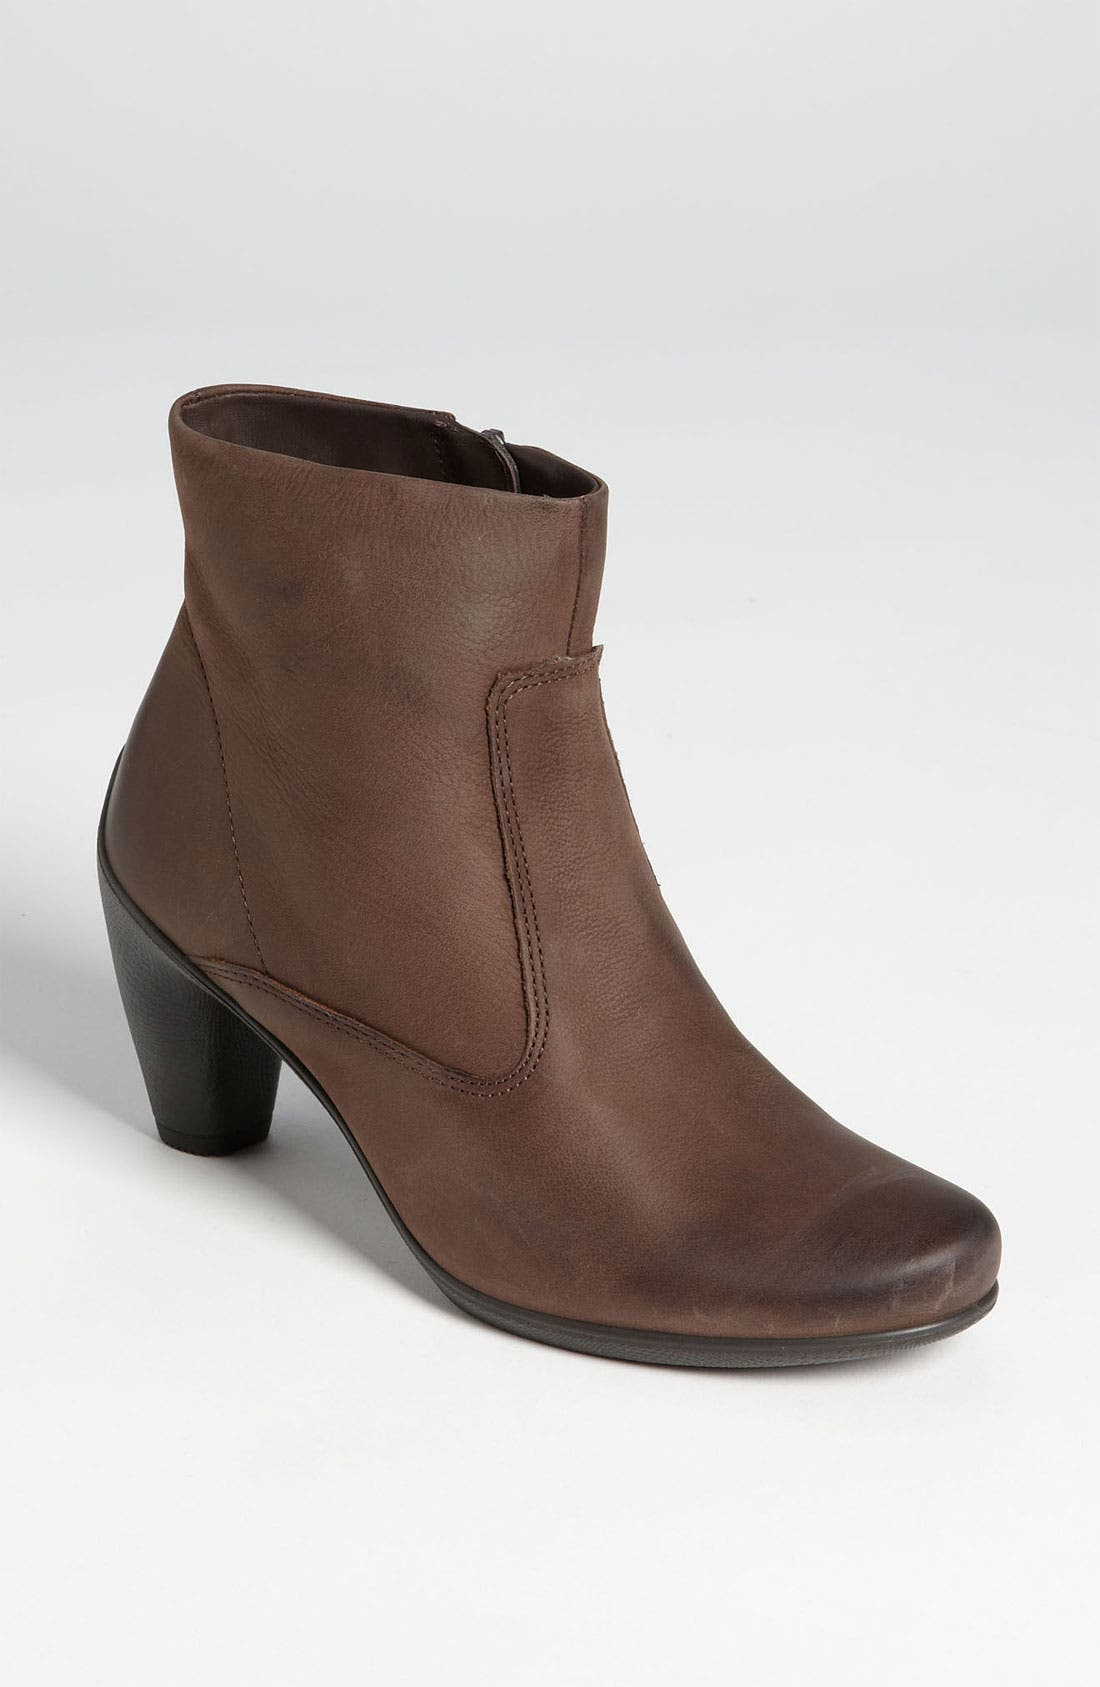 Main Image - ECCO 'Sculptured 65' Ankle Bootie